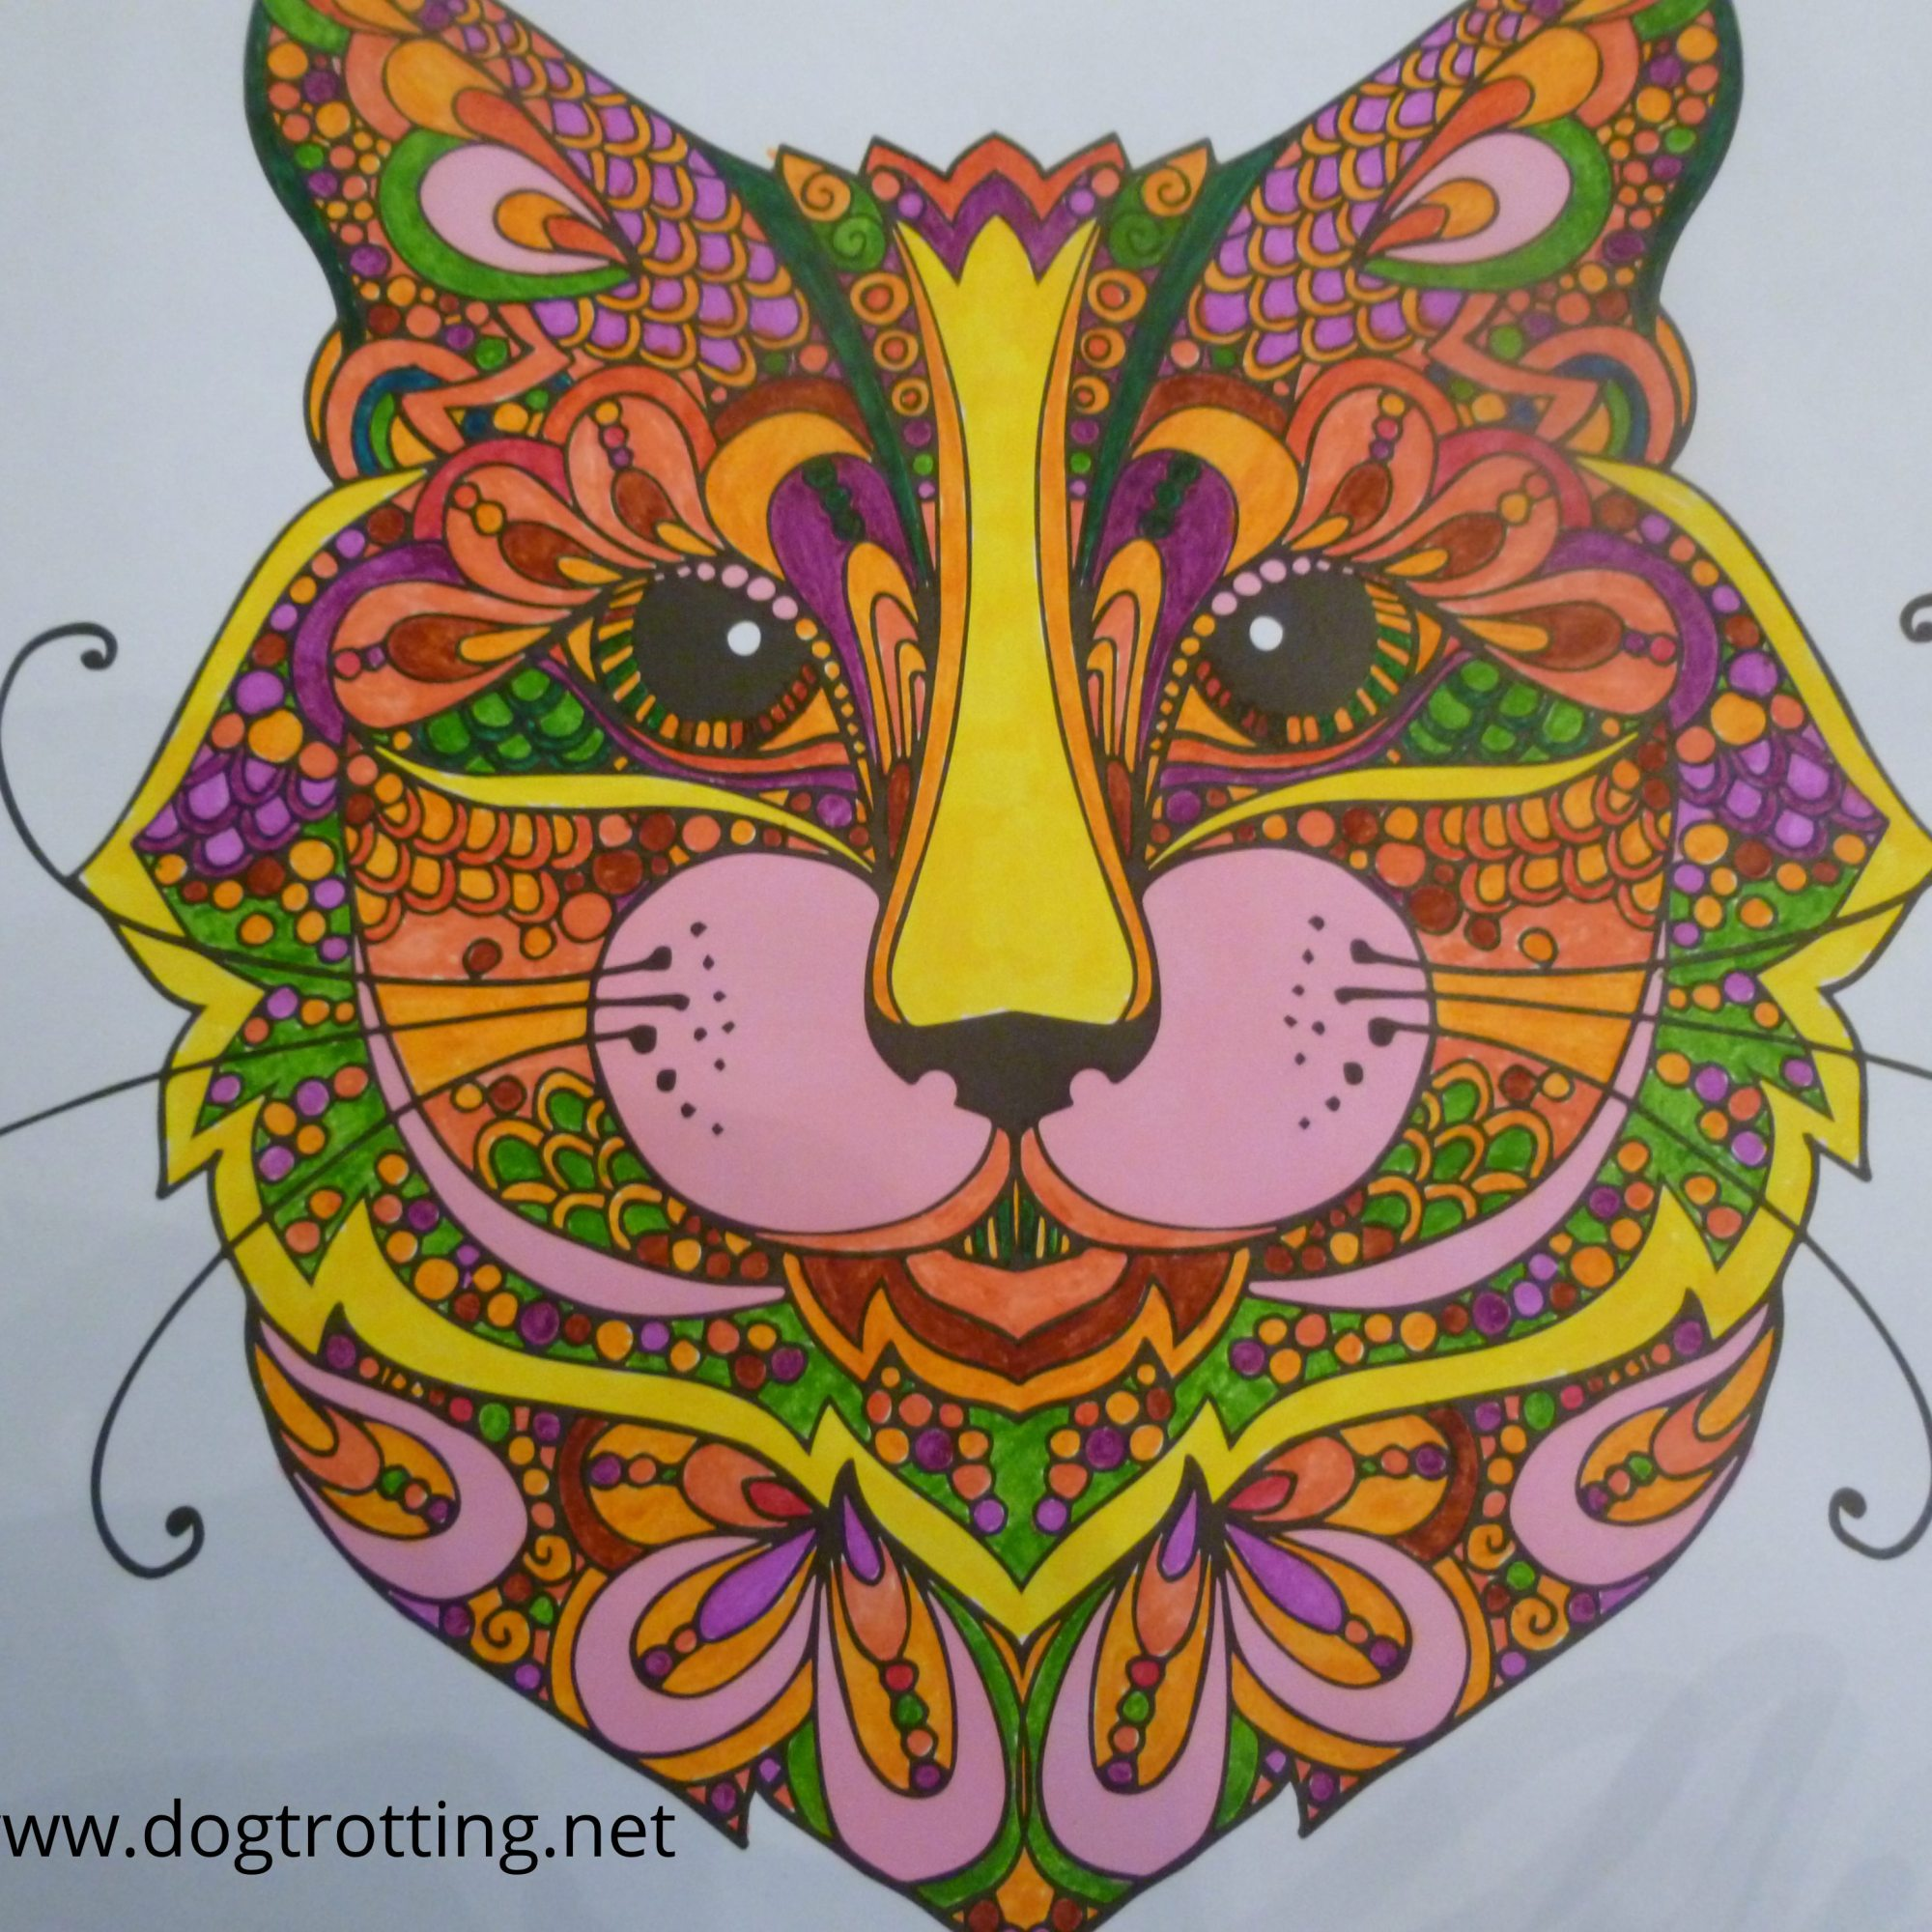 cat image from colouring book